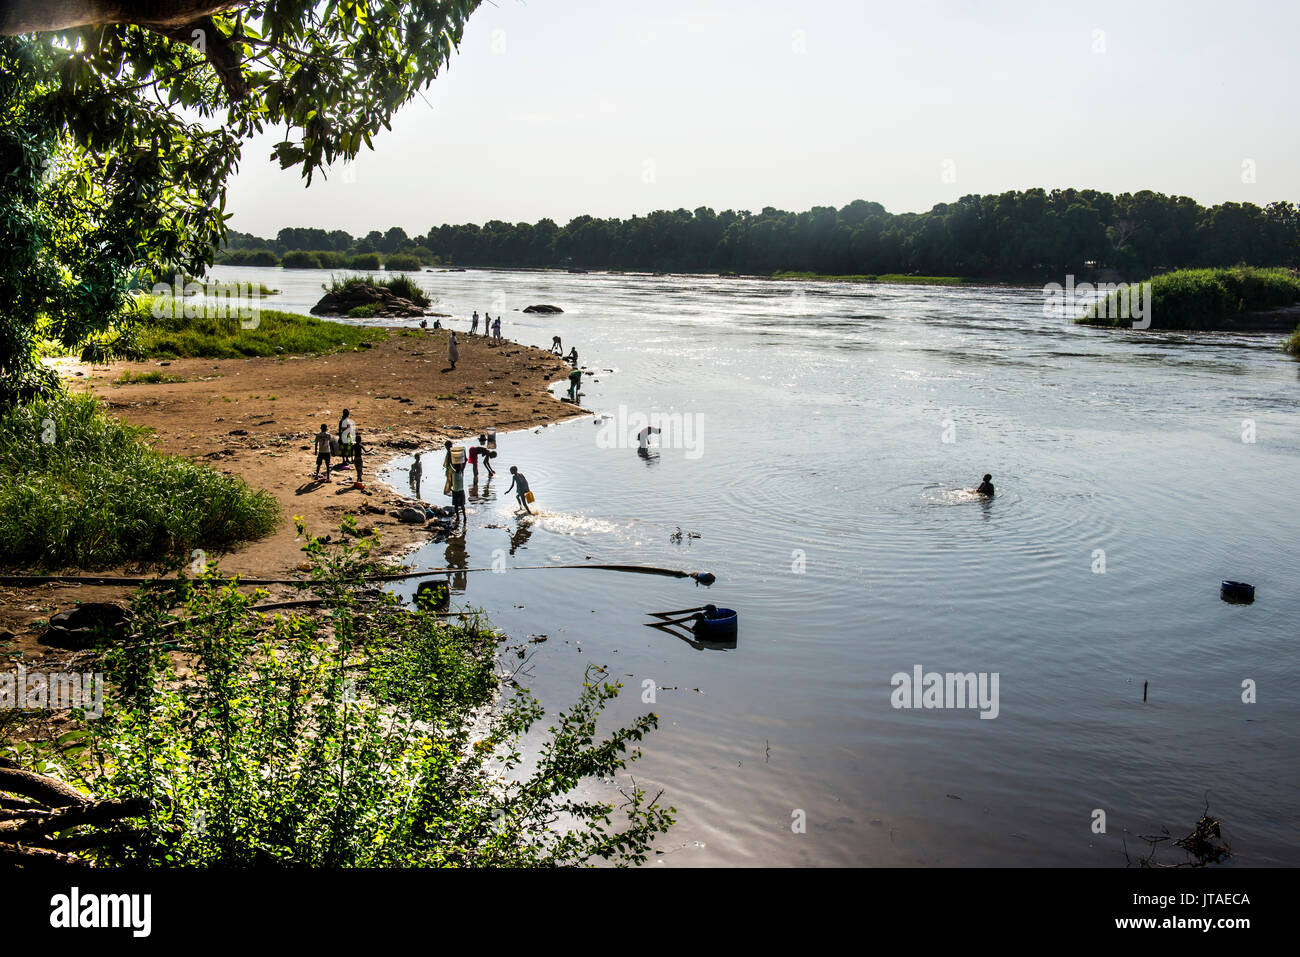 Local people playing in the waters of the White Nile River, Juba, South Sudan, Africa - Stock Image